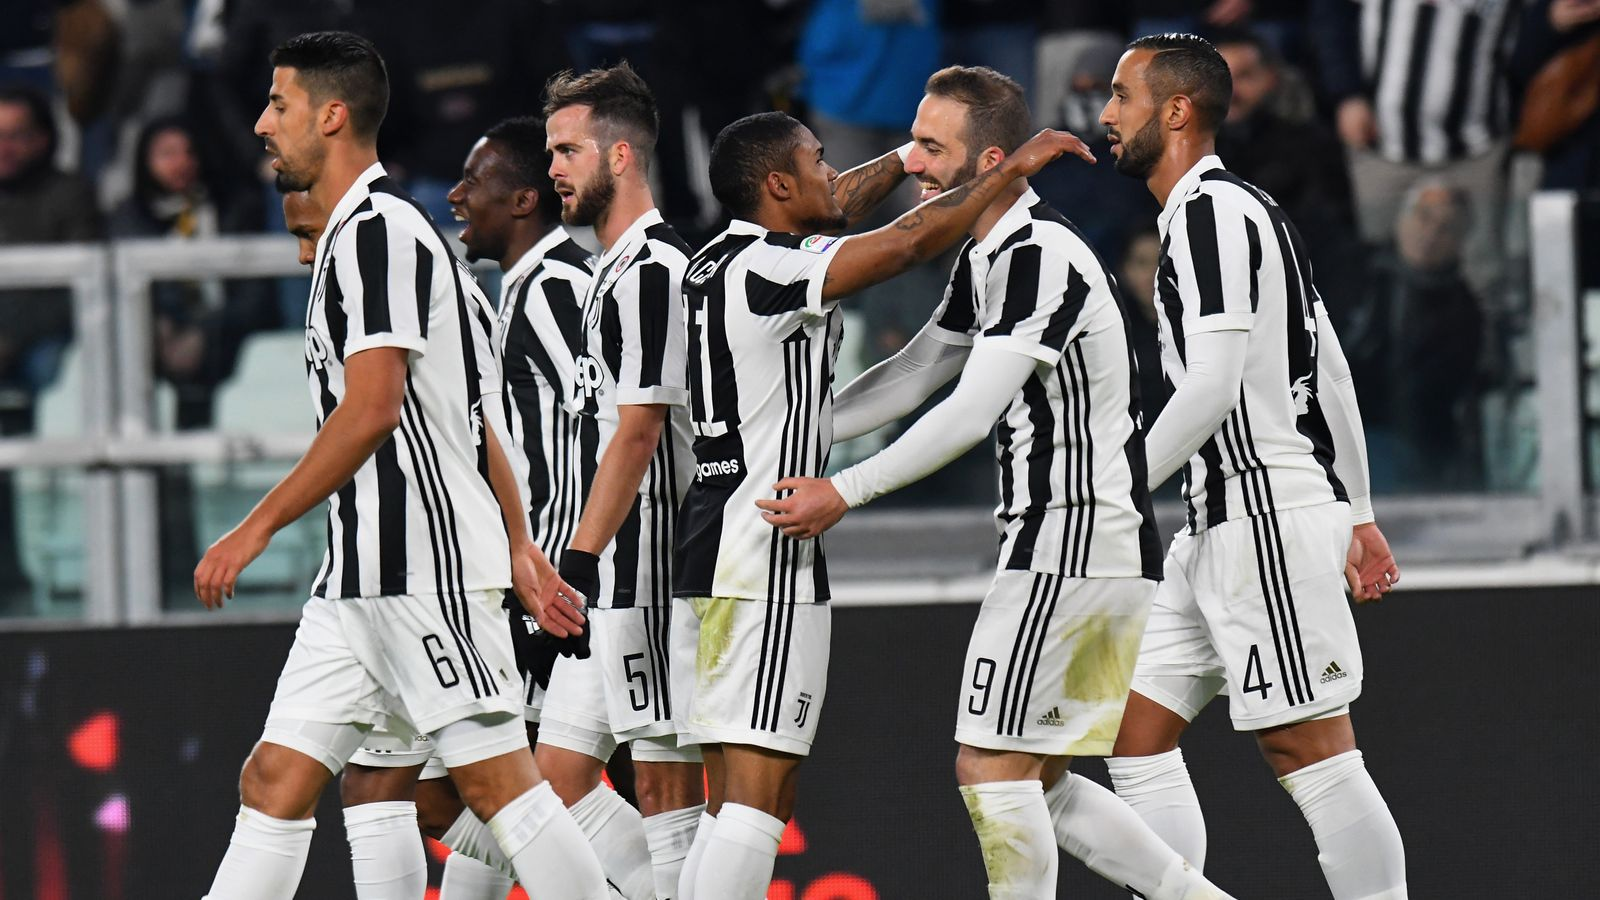 Juventus 1 0 Genoa Douglas Costa Nets As Juve Turn Up Heat On Serie A Leaders Napoli Football News Sky Sports